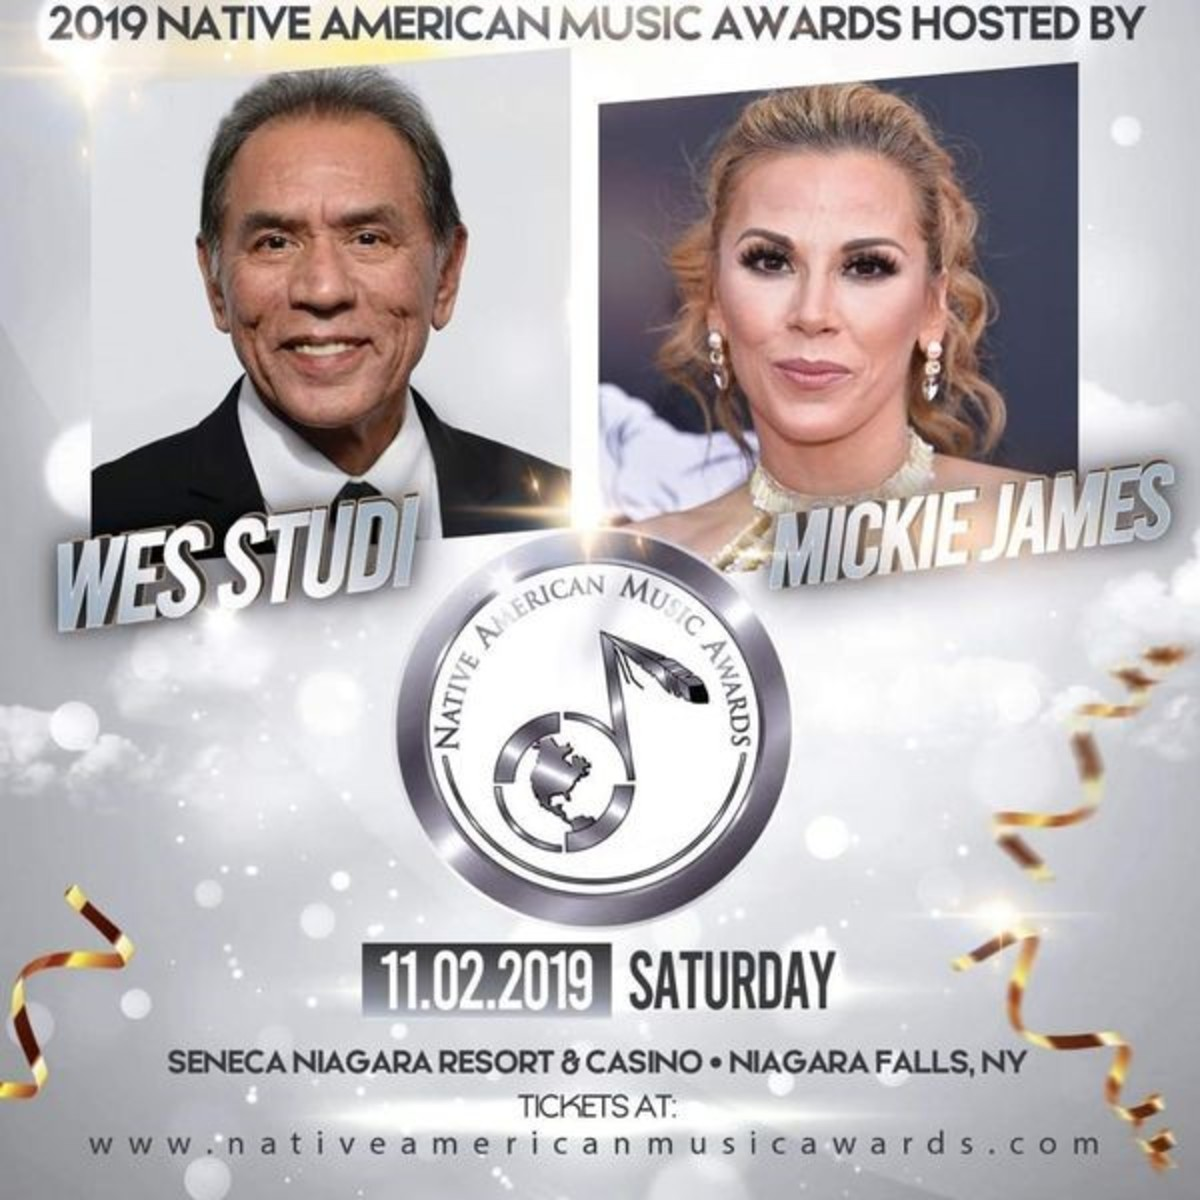 The Native American Music Awards have just announced Oscar honoree and Eastern Band of Cherokee actor Wes Studi as host of this year's Native American Music Awards or as it is also known, the Nammys. Studi will also be joined by Country music singer and WWE star Mickie James, Powhatan.